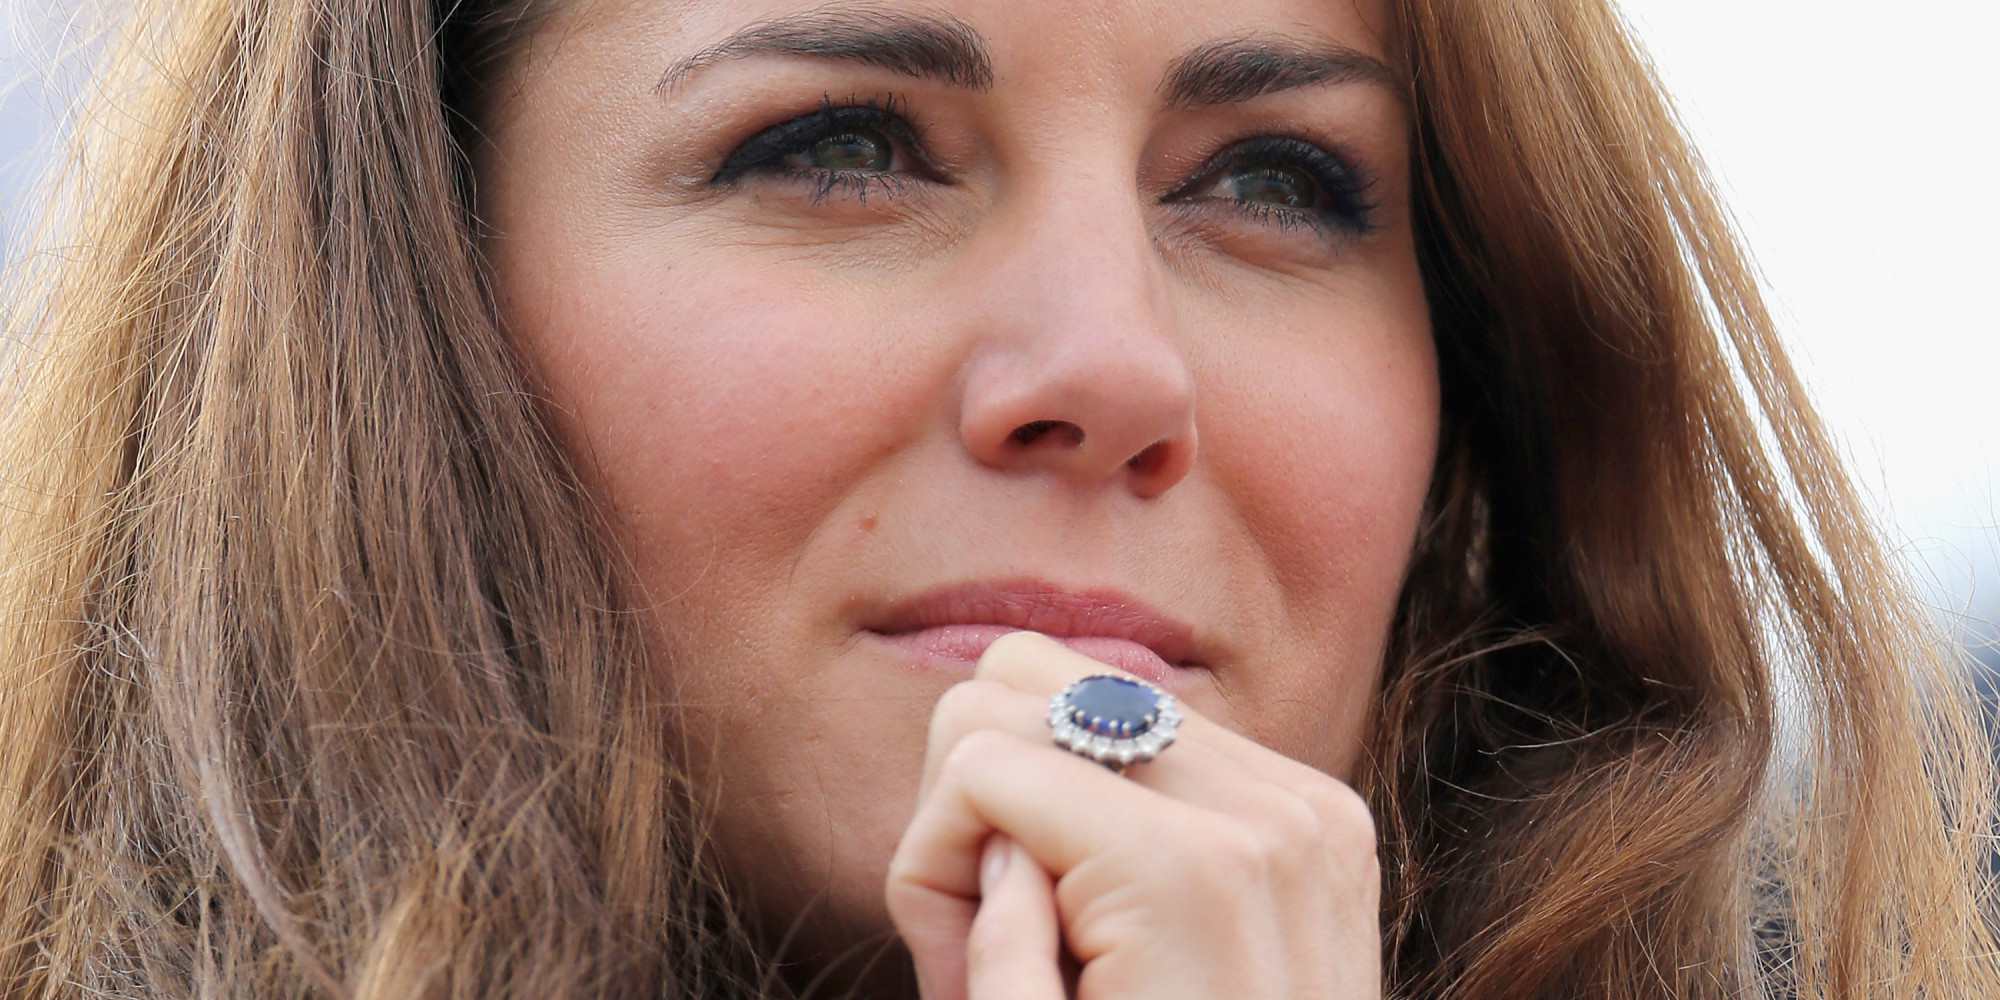 celebrity engagement rings n princess kate wedding ring Celebrity Engagement Rings Kate Middleton s Sparkler Not The Most Expensive INFOGRAPH